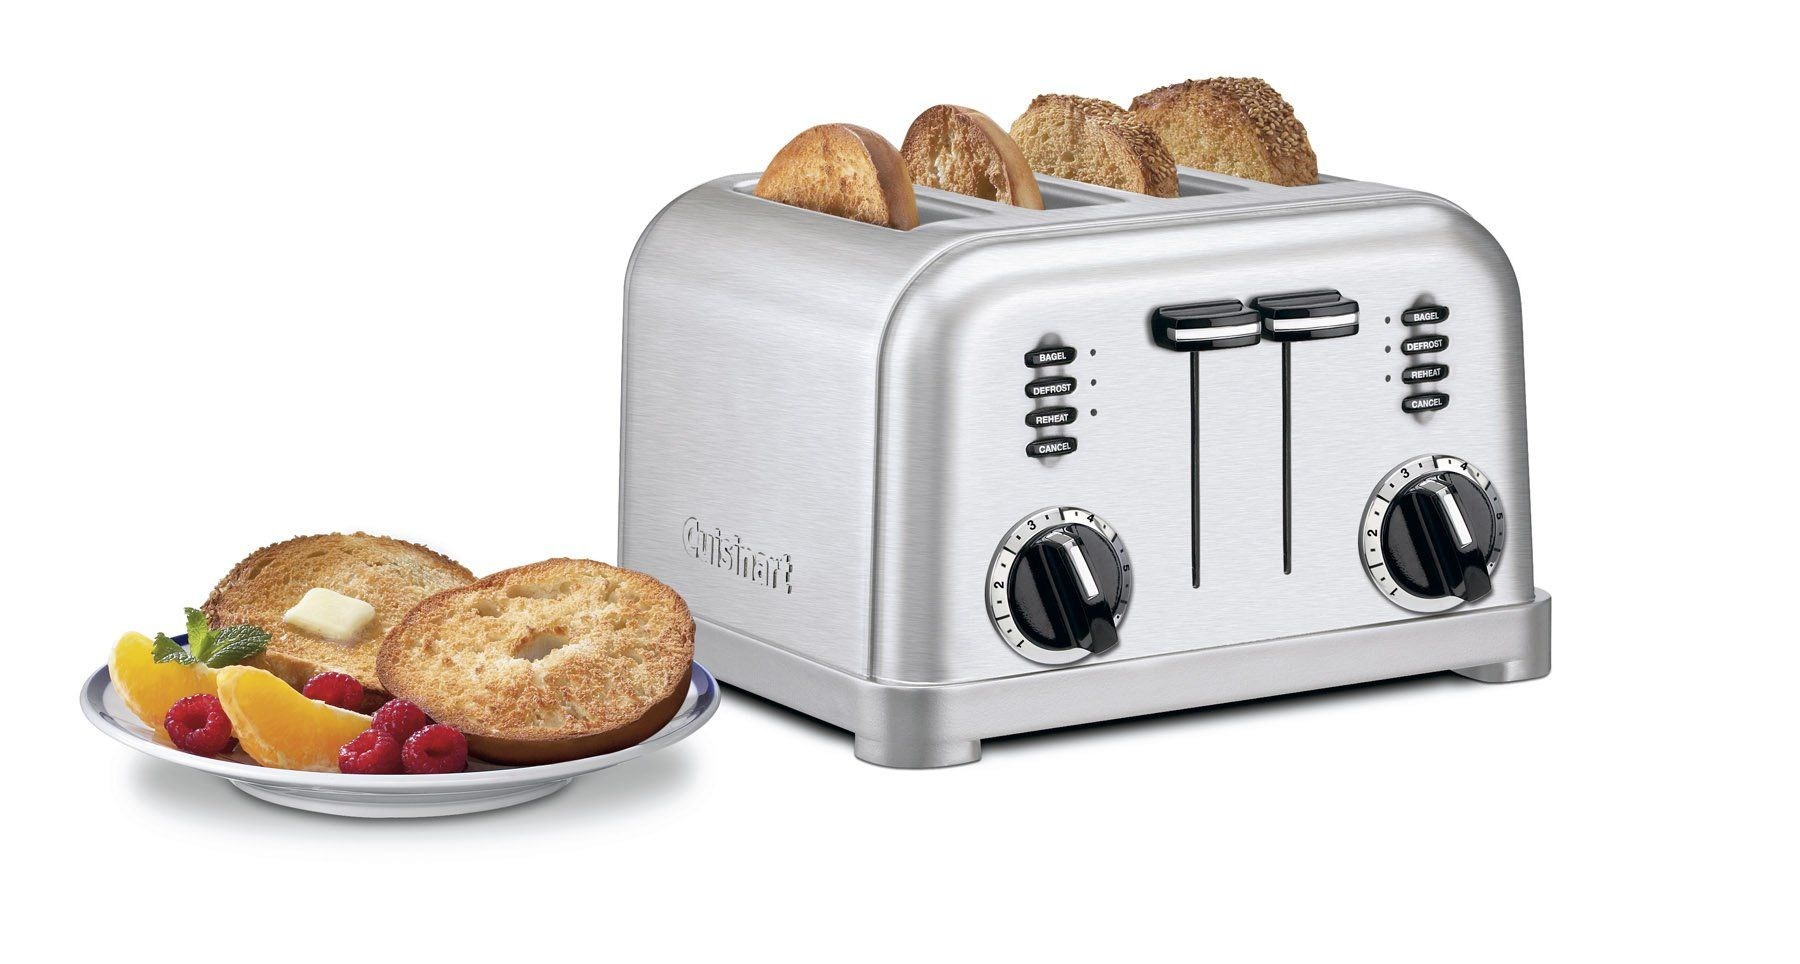 Cuisinart cpt180 metal classic 4slice toaster brushed